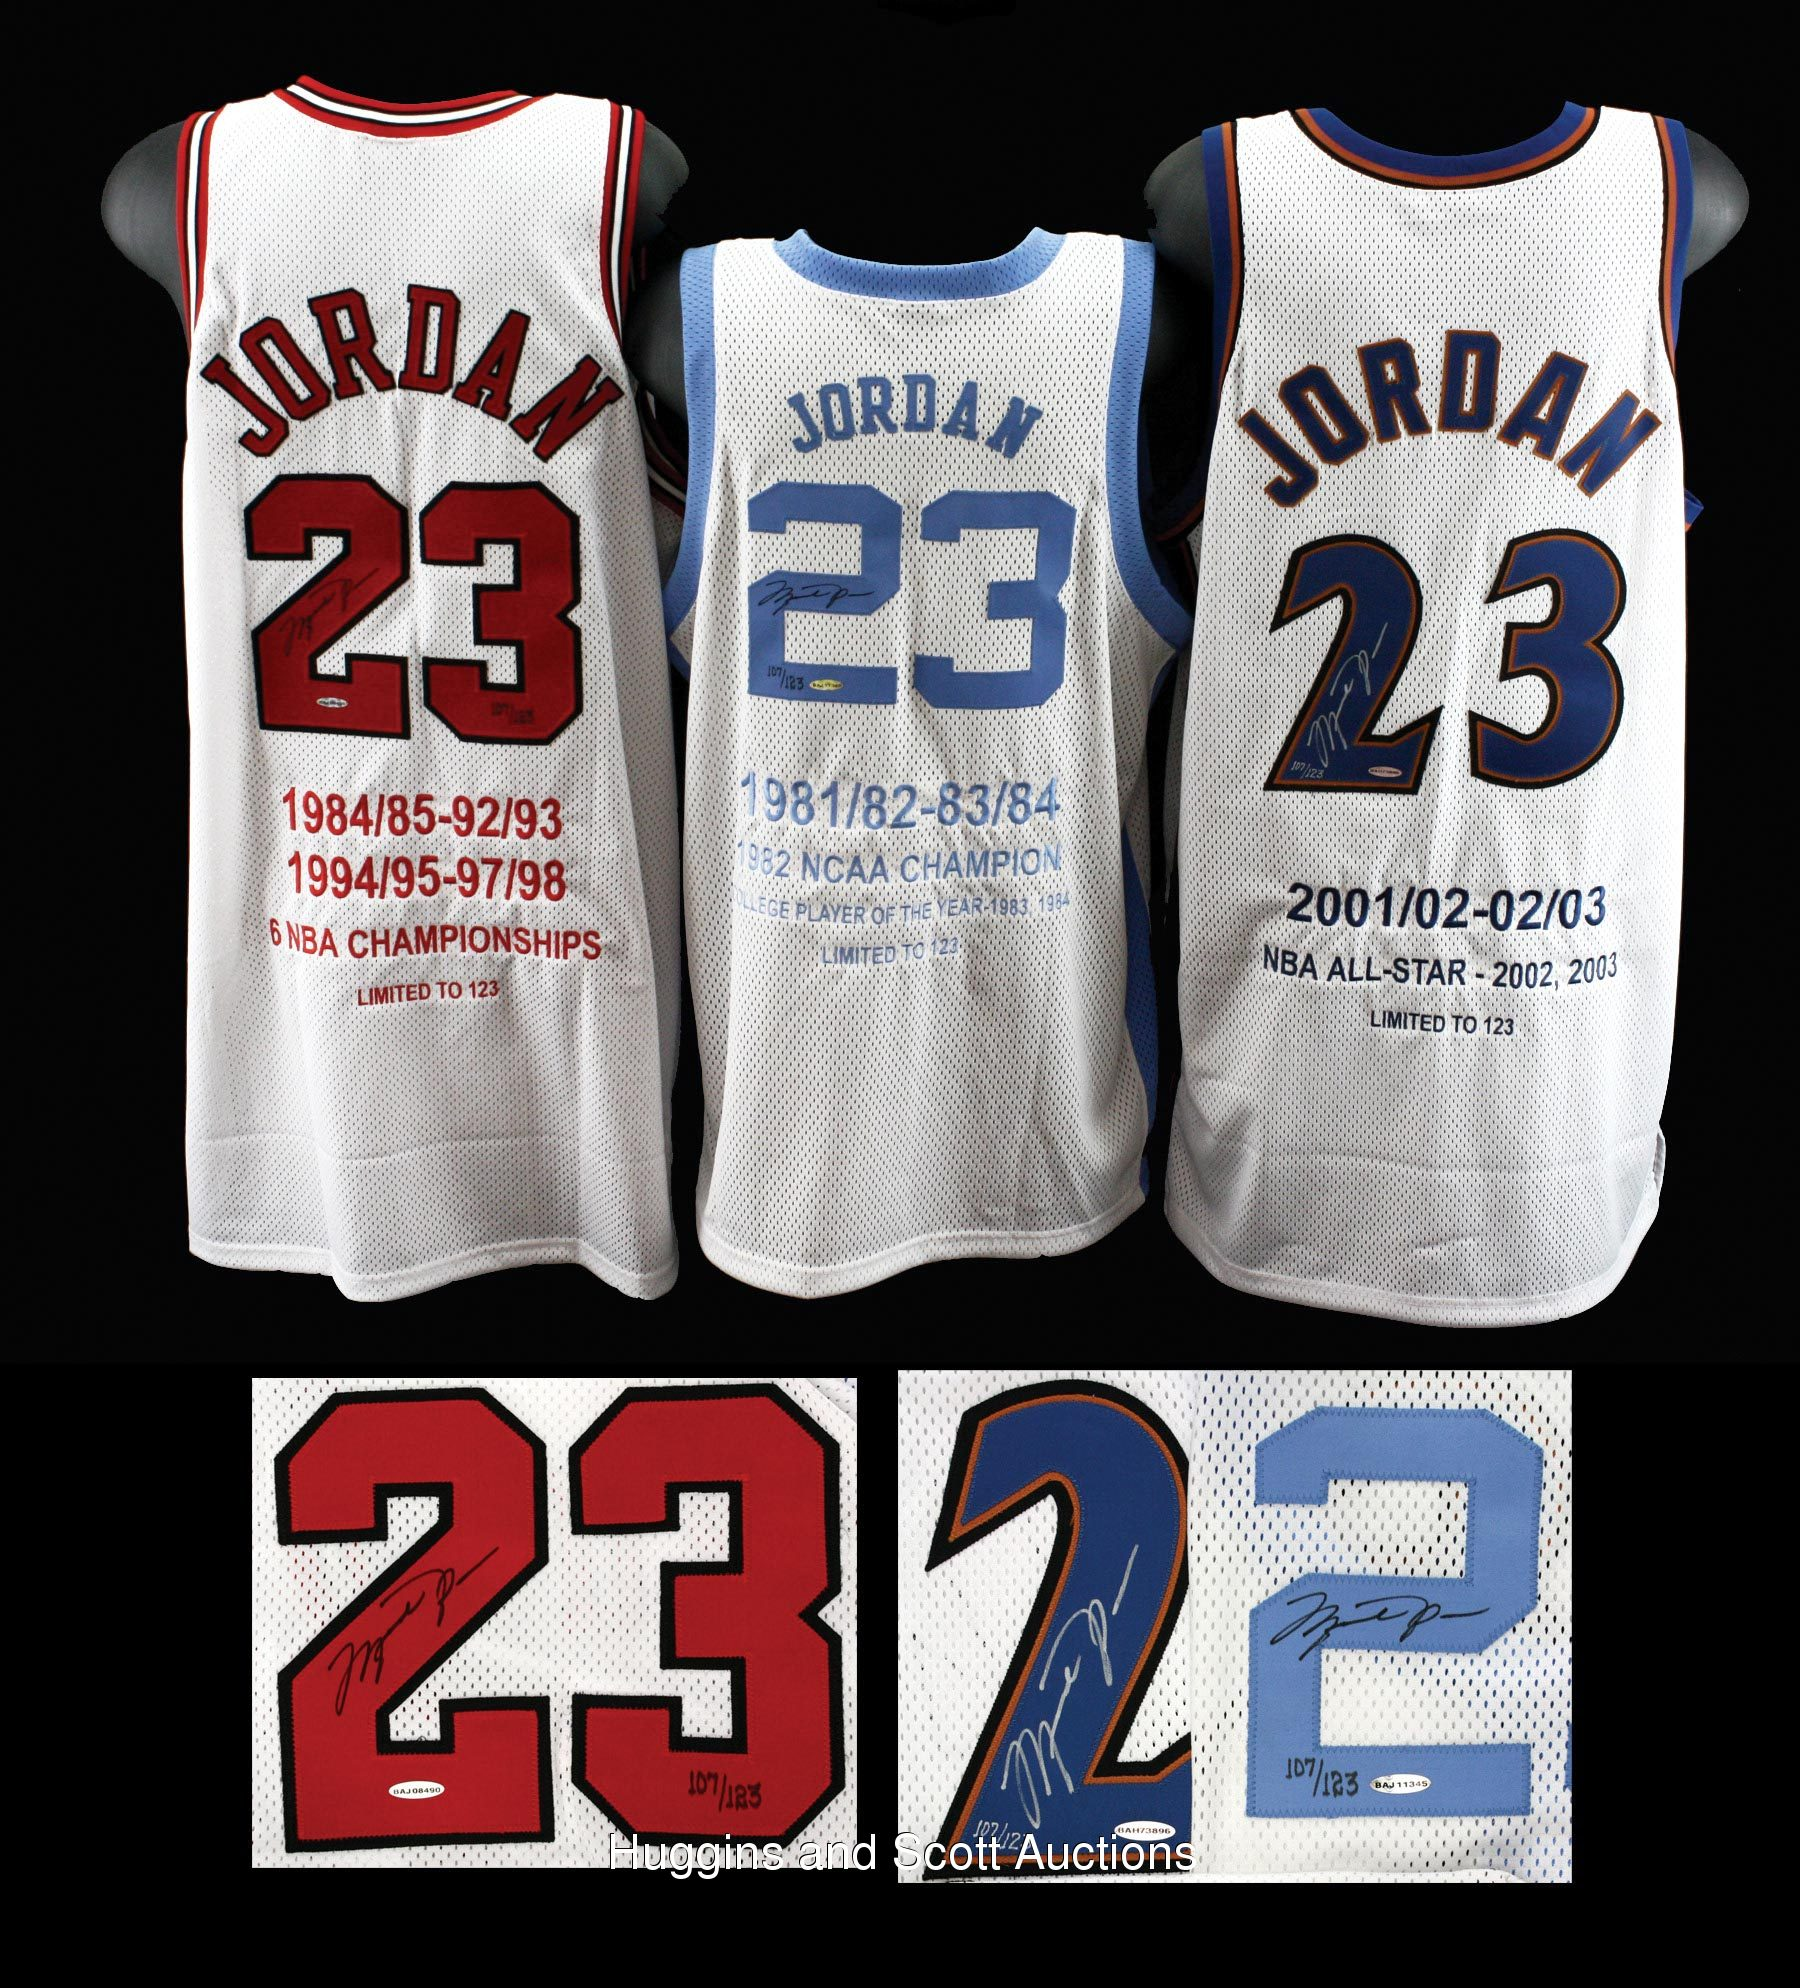 ... DWC Exchange Blog 3) UDA Michael Jordan Career Stats Autographed Jerseys—All    123 e634bb08f